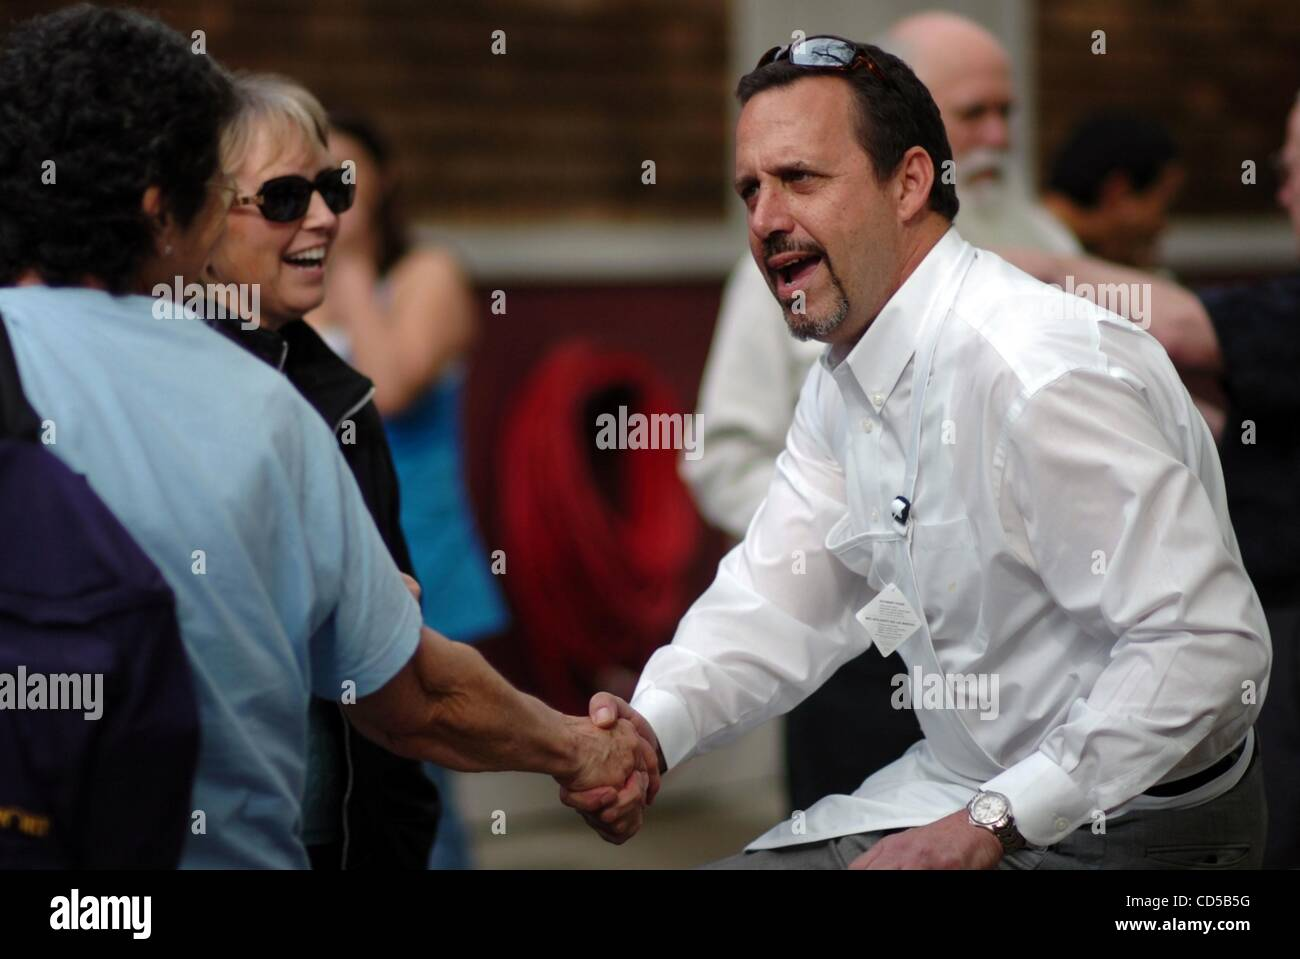 Mar 19, 2008 - Sacramento, California, USA - UC Davis head of building and grounds SAL GENITO greets visitors to - Stock Image